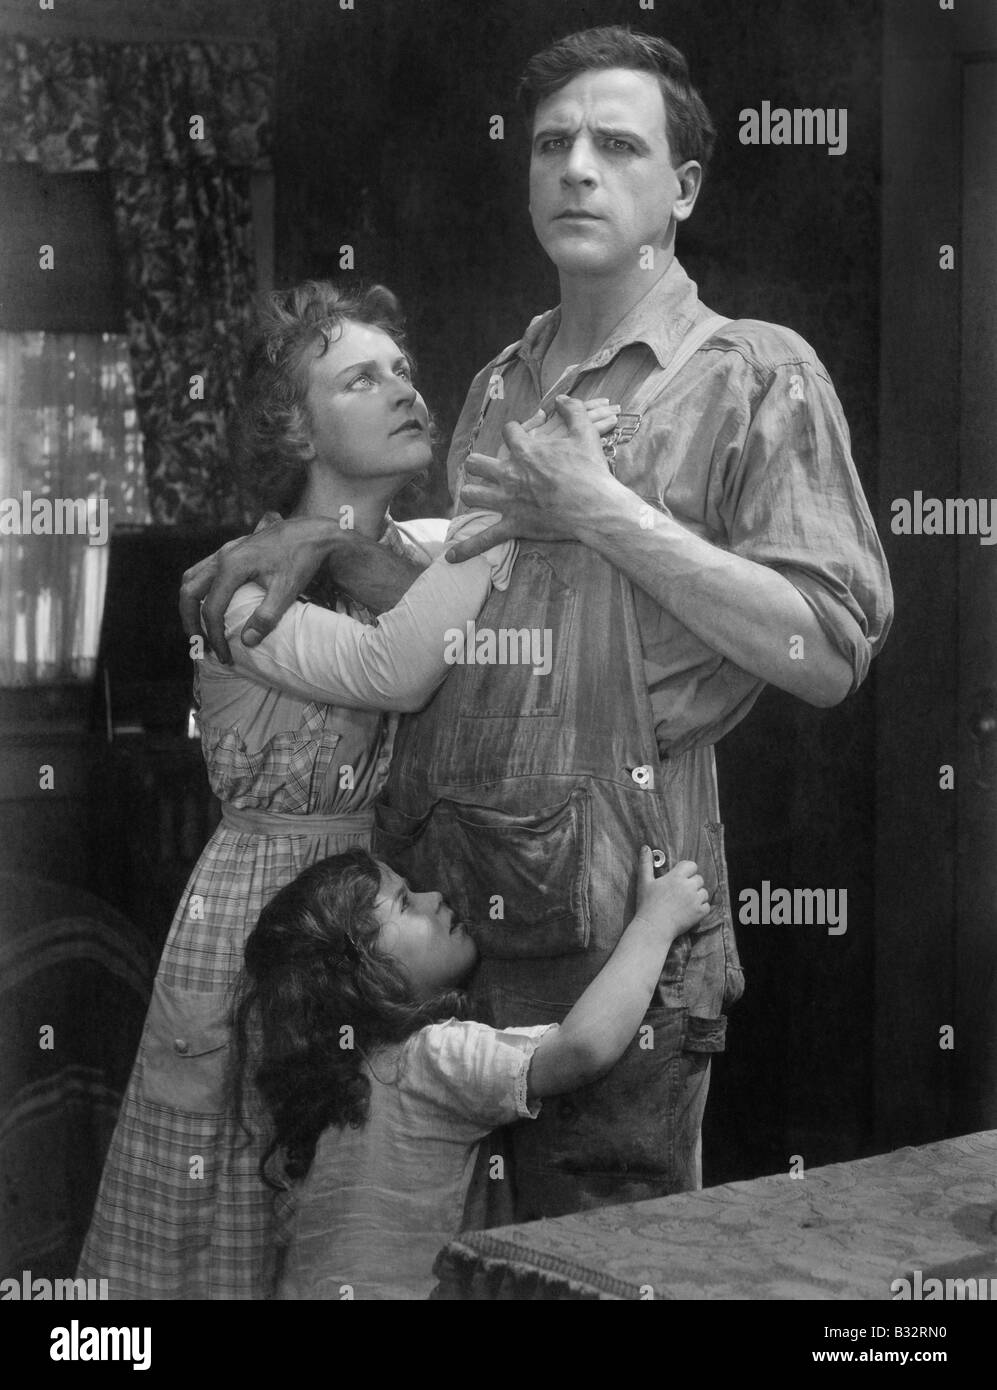 Couple standing embraced with their daughter Stock Photo